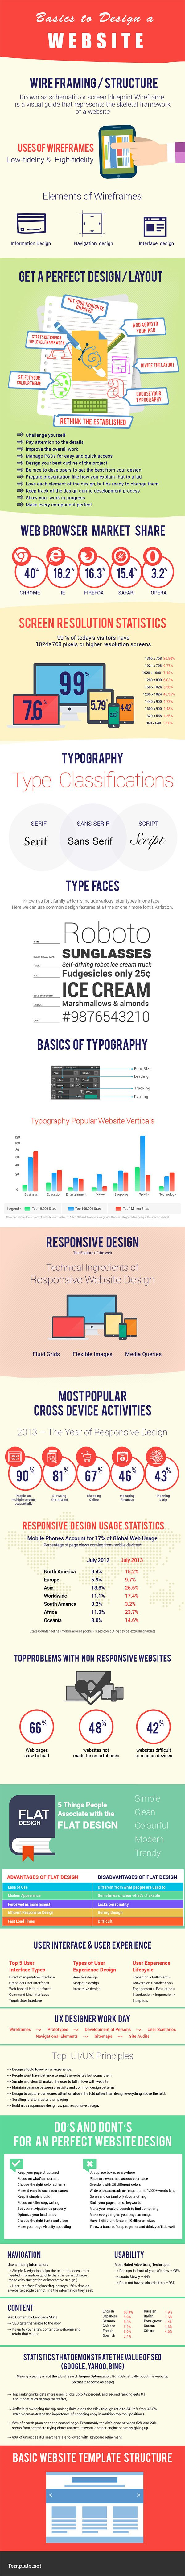 Website Basics 20 Do's and Don'ts for a Perfect Website Creating a new website doesn't have to be difficult, knowing what you want to include before you approach a web design company can go a long way to achieving perfect results first time. But what are the things you should be considering?